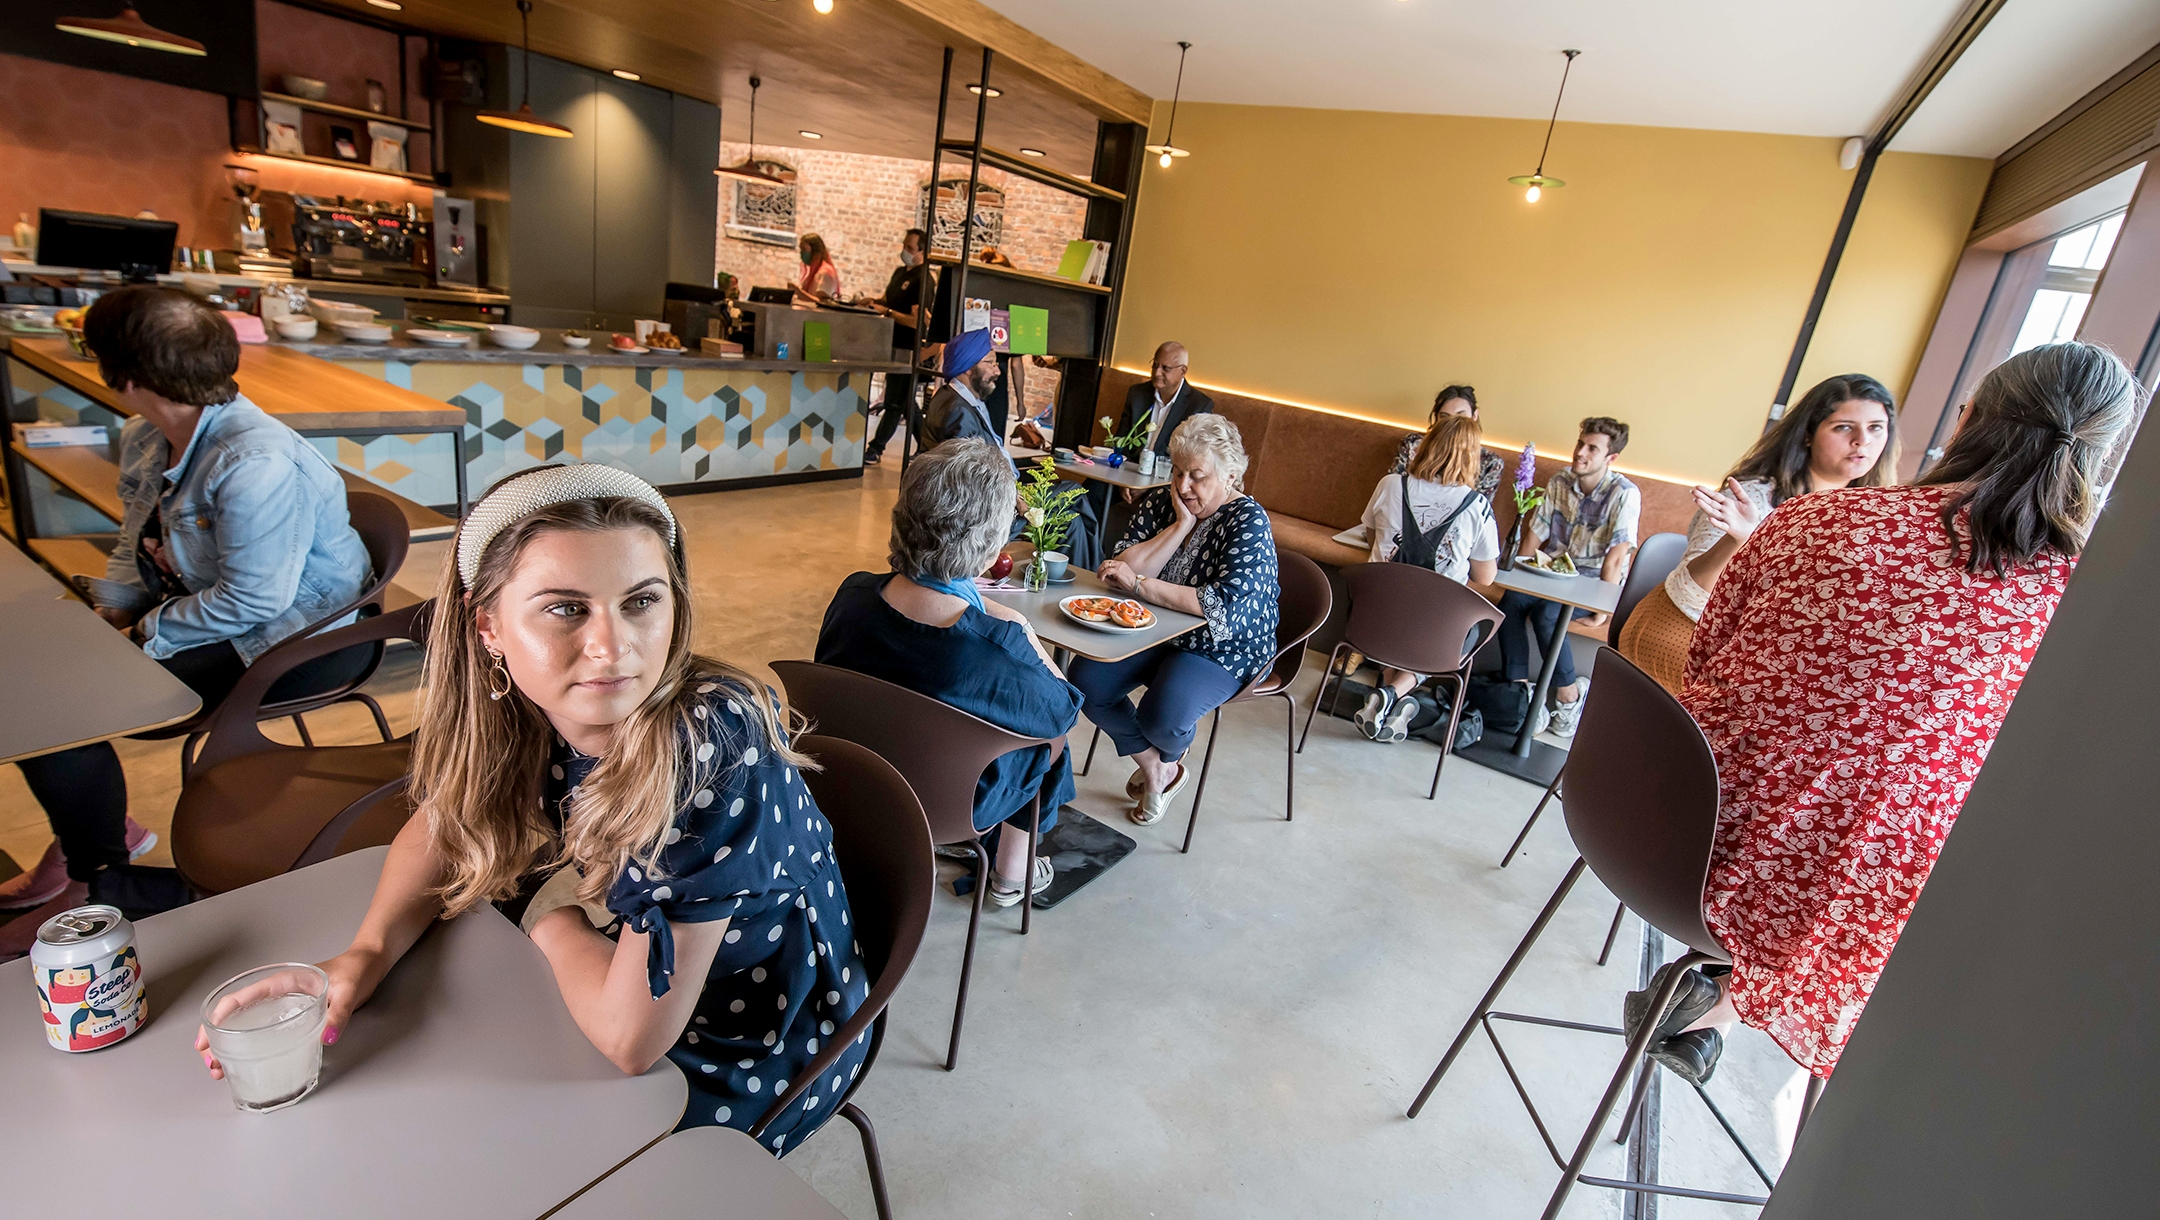 The newly-opened kosher-style café is part of a metal-exterior extension added to the Manchester Jewish Museum in Manchester, during 2 years of renovations that began in 2019. (Chris Payne)